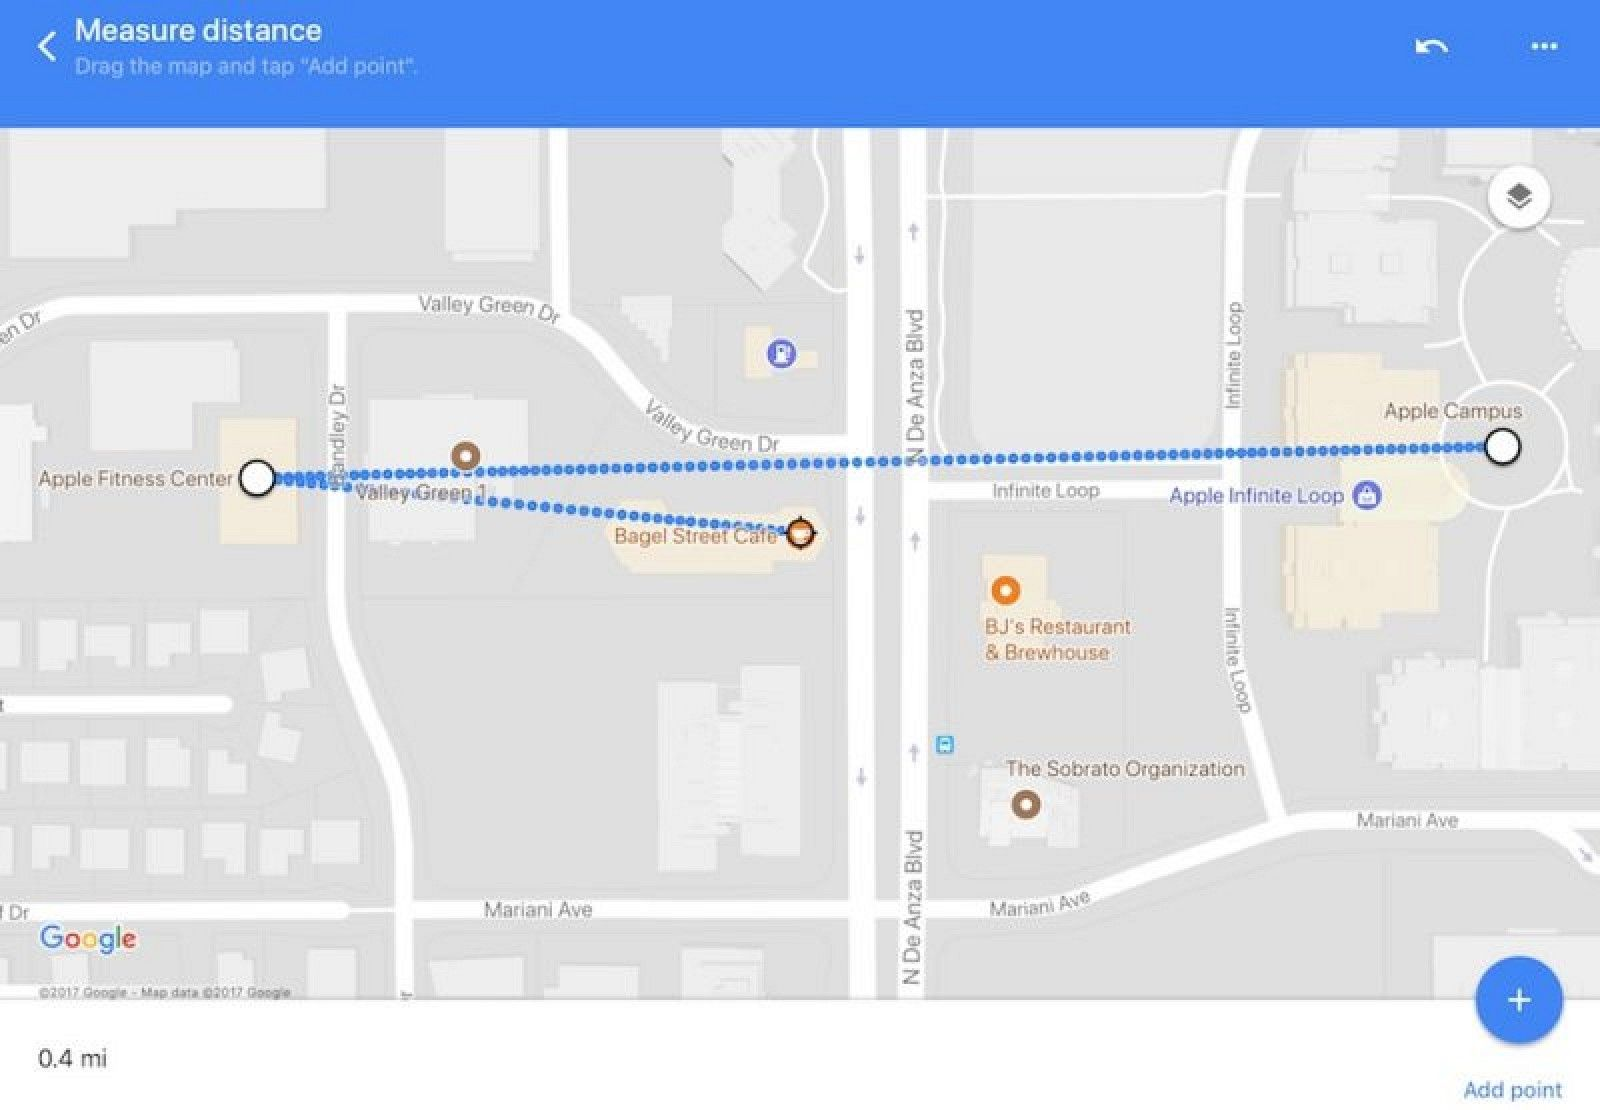 Google Maps App Update Brings 'Measure Distance' Feature